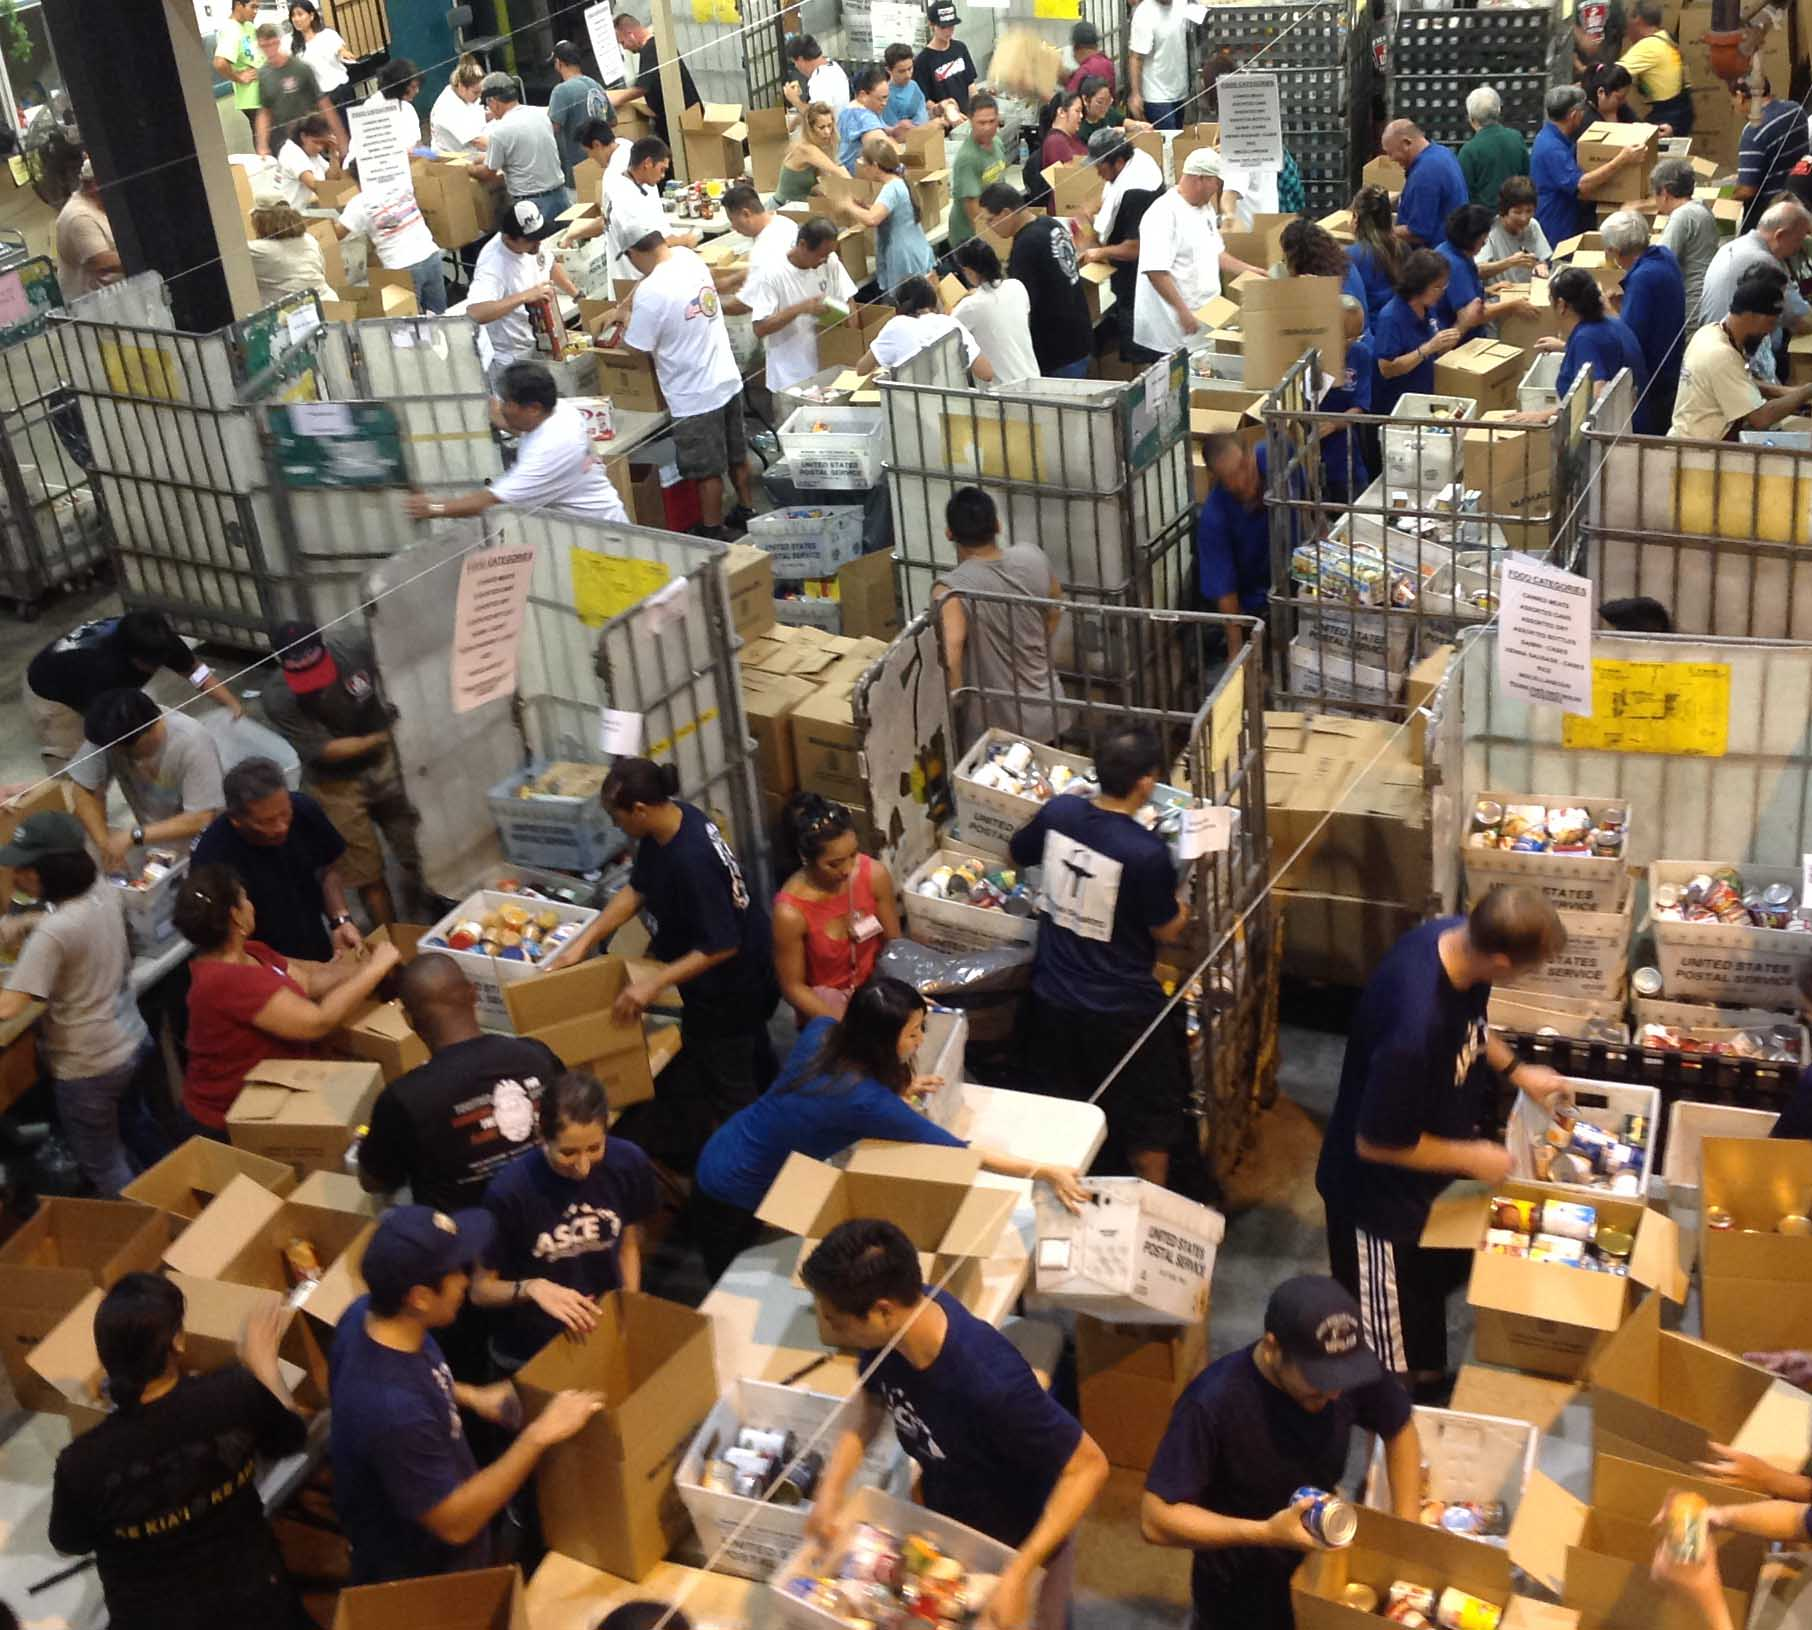 Union volunteers at annual National Letter Carriers Stamp Out Hunger food drive.